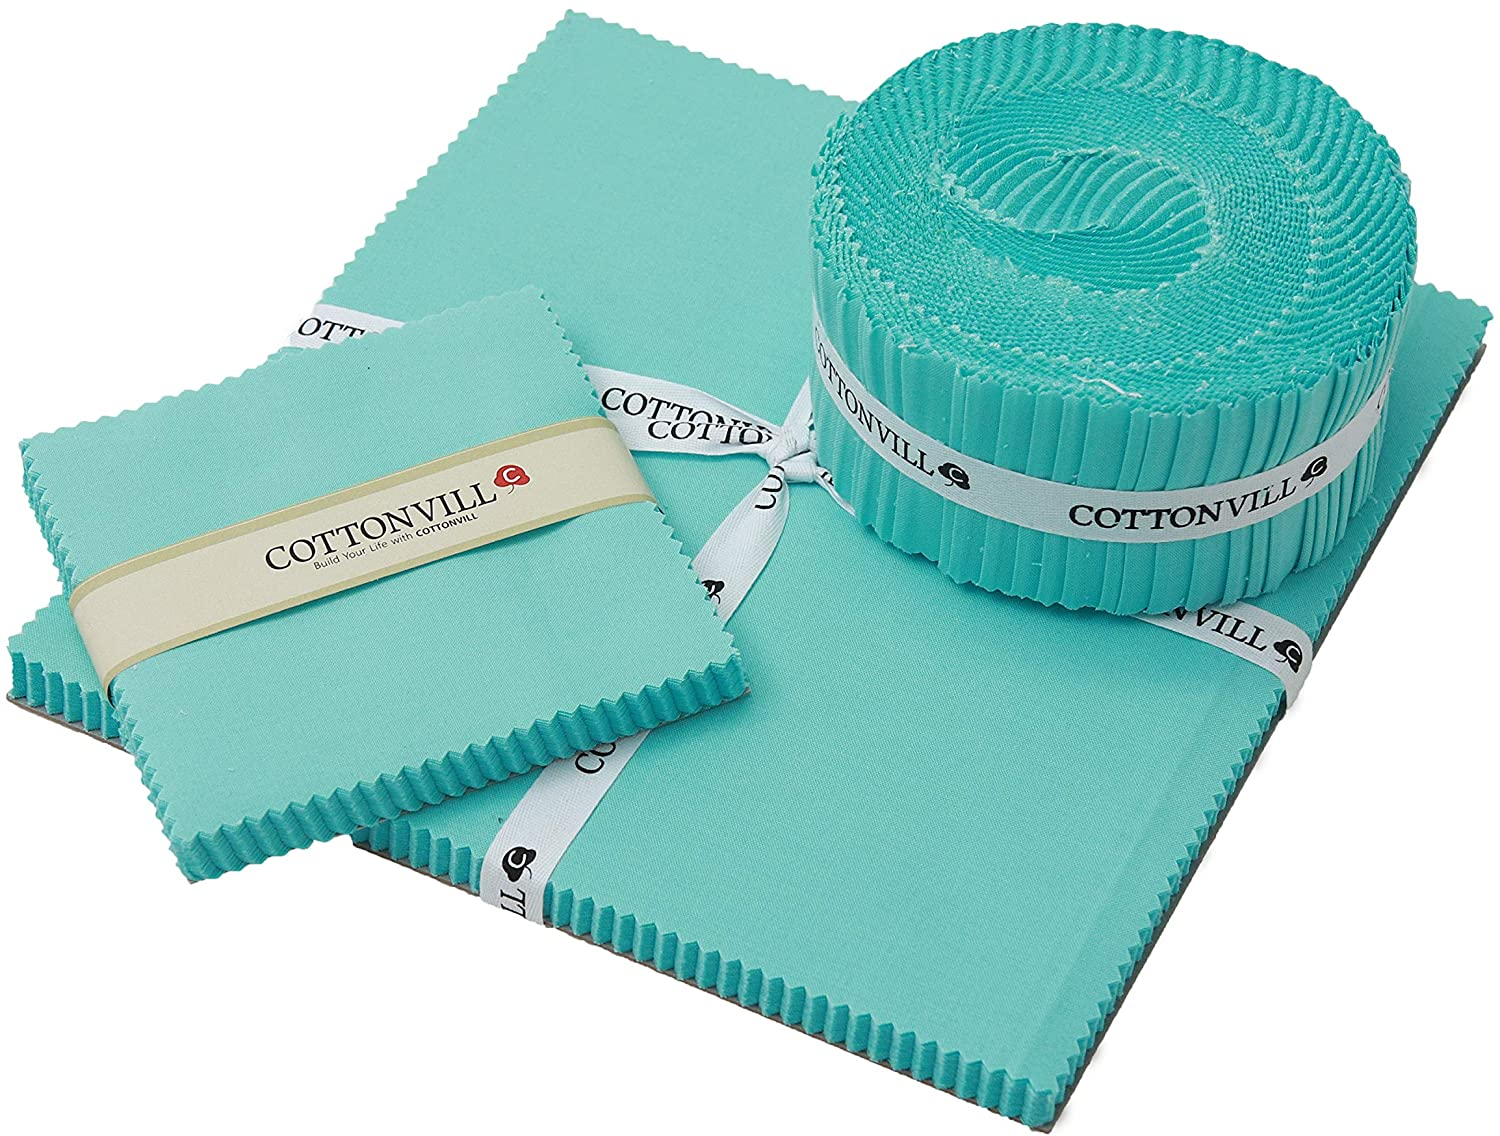 COTTONVILL 20COUNT Cotton Solid Quilting Fabric (10inch Square, 30-Blue Tint)